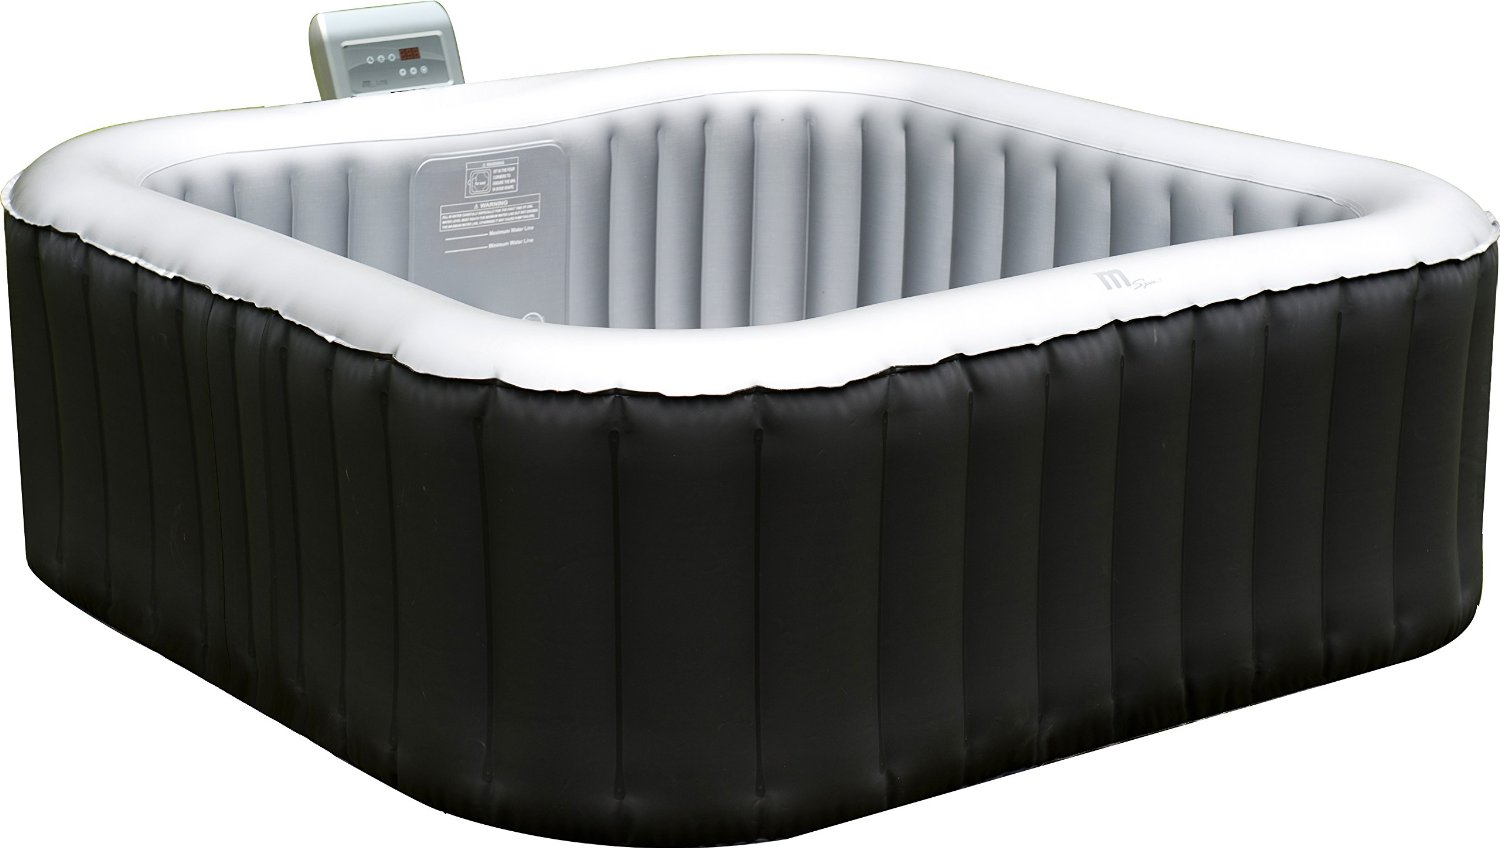 mspa alpine inflatable hot tub review inflatable hot tub reviews the best blow up hot tubs. Black Bedroom Furniture Sets. Home Design Ideas